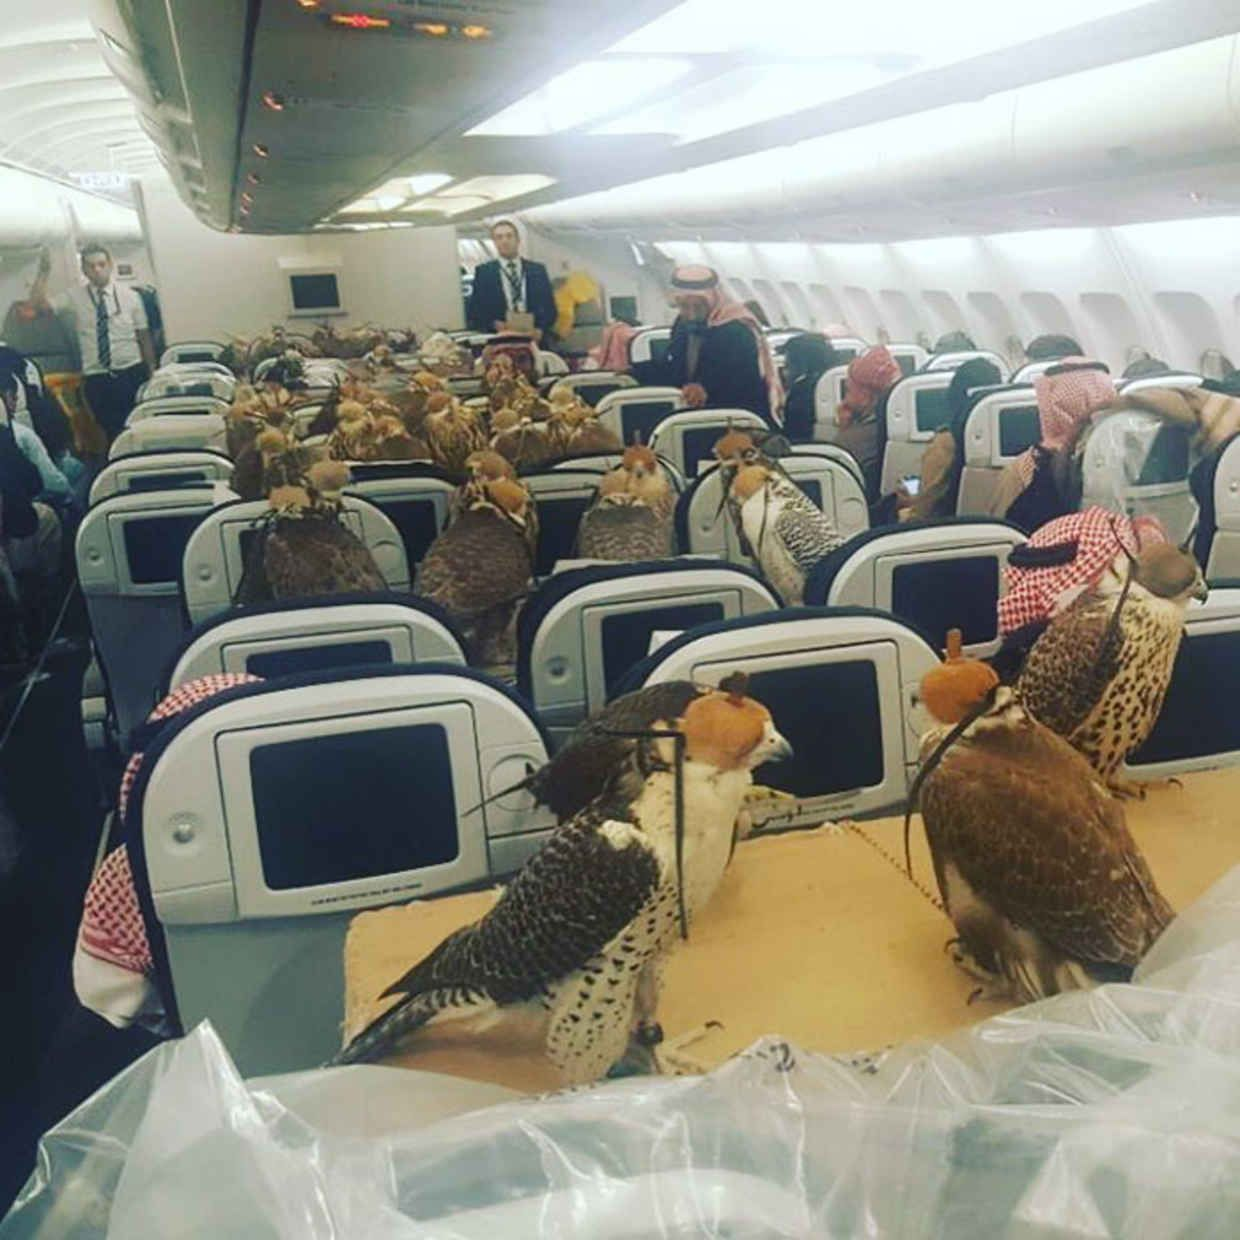 Saudi Prince Buys 80 Plane Seats For His 80 Falcons So They Can Fly With Him Buying Plane Tickets Plane Tickets Plane Seats